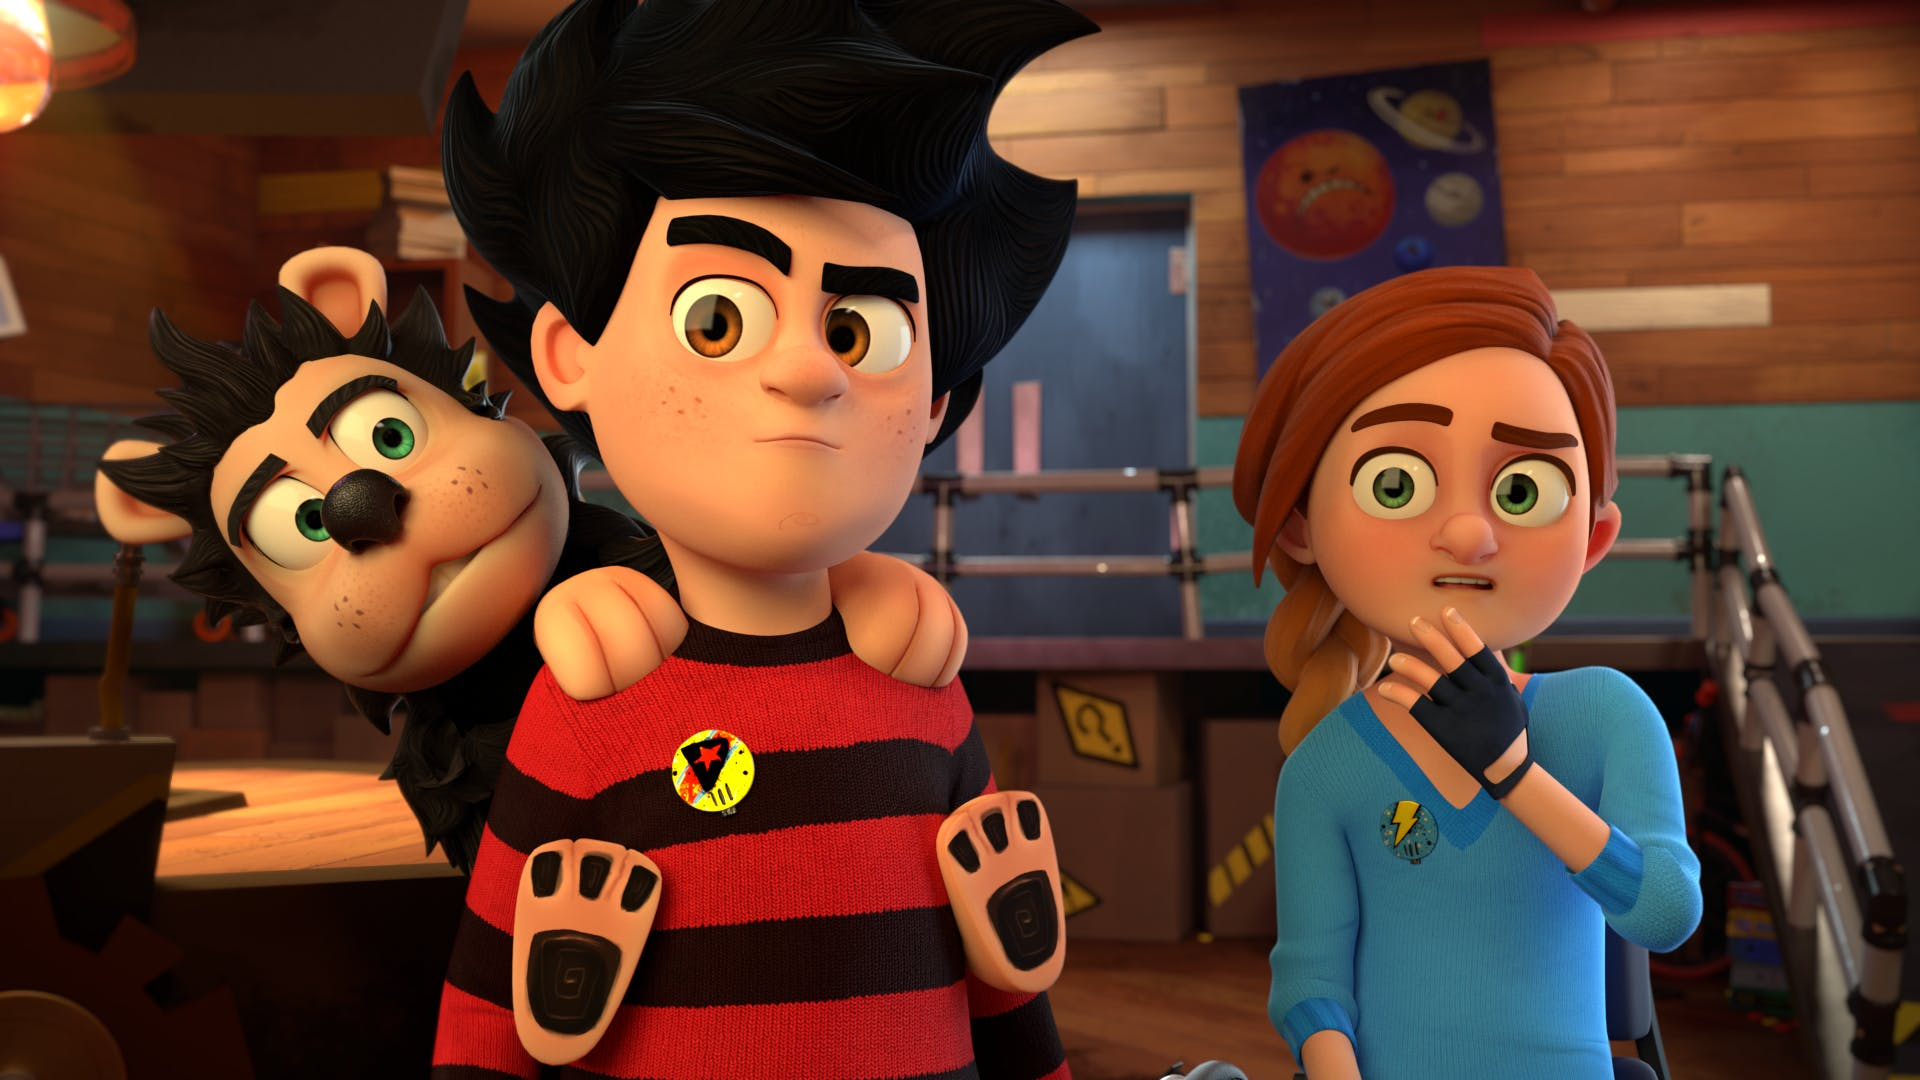 Gnasher sneaks into school with Dennis by pretending to be his backpack! From Dennis and Gnasher: Unleashed!